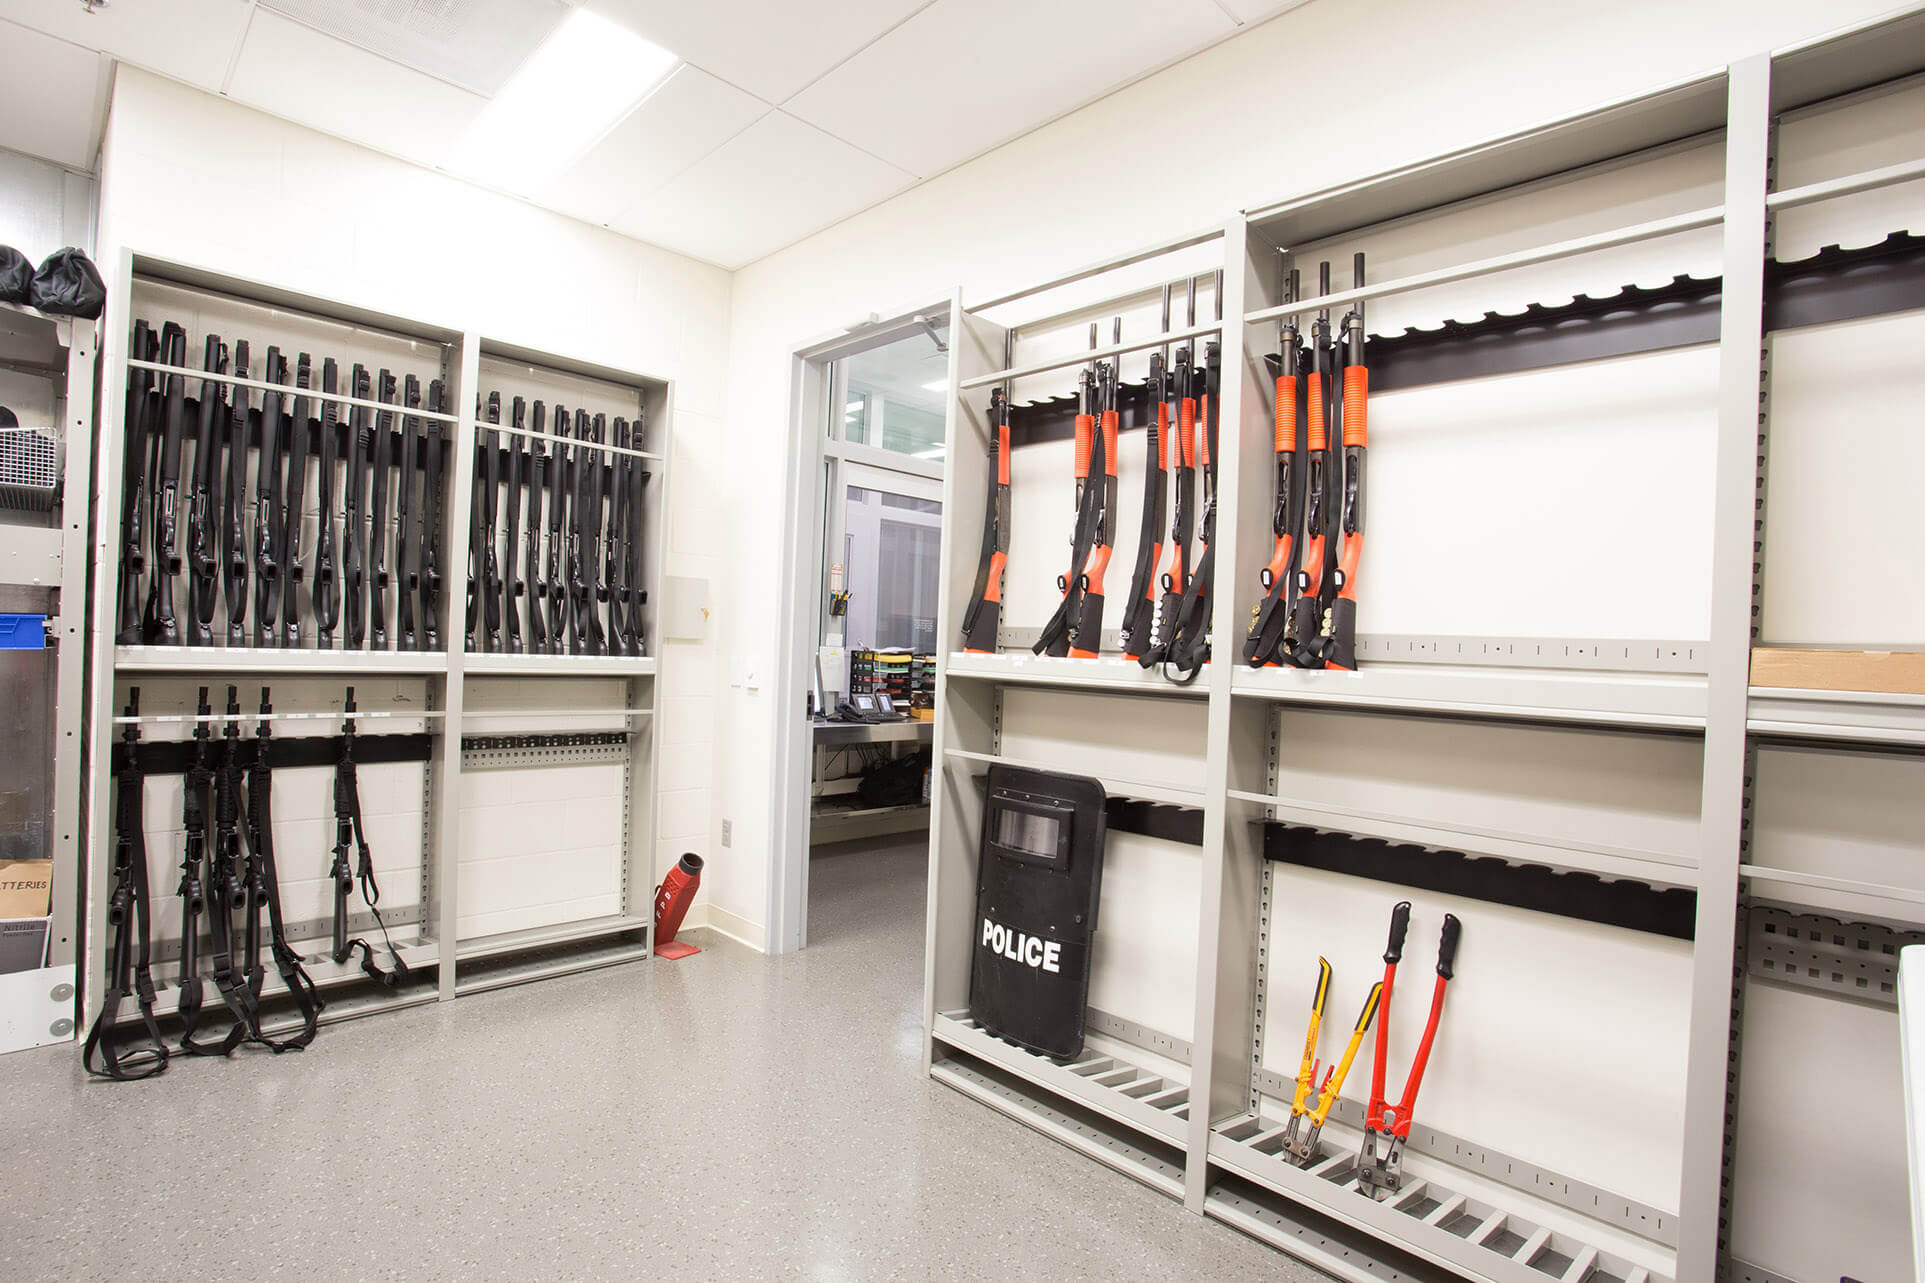 Riot gear stored on wall mounted Weapons Racks